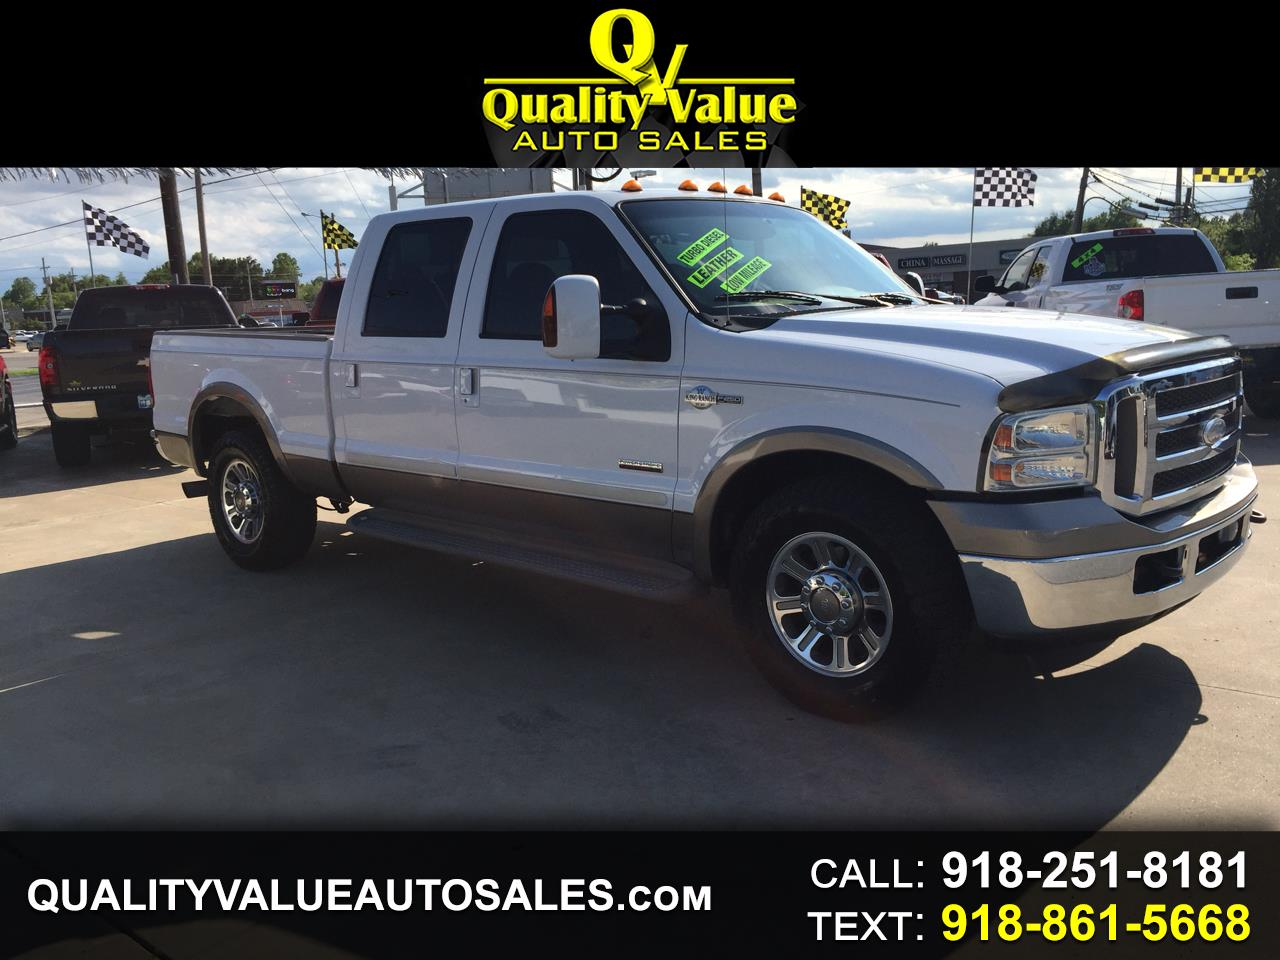 2005 Ford F-250 SD King Ranch Crew Cab 2WD